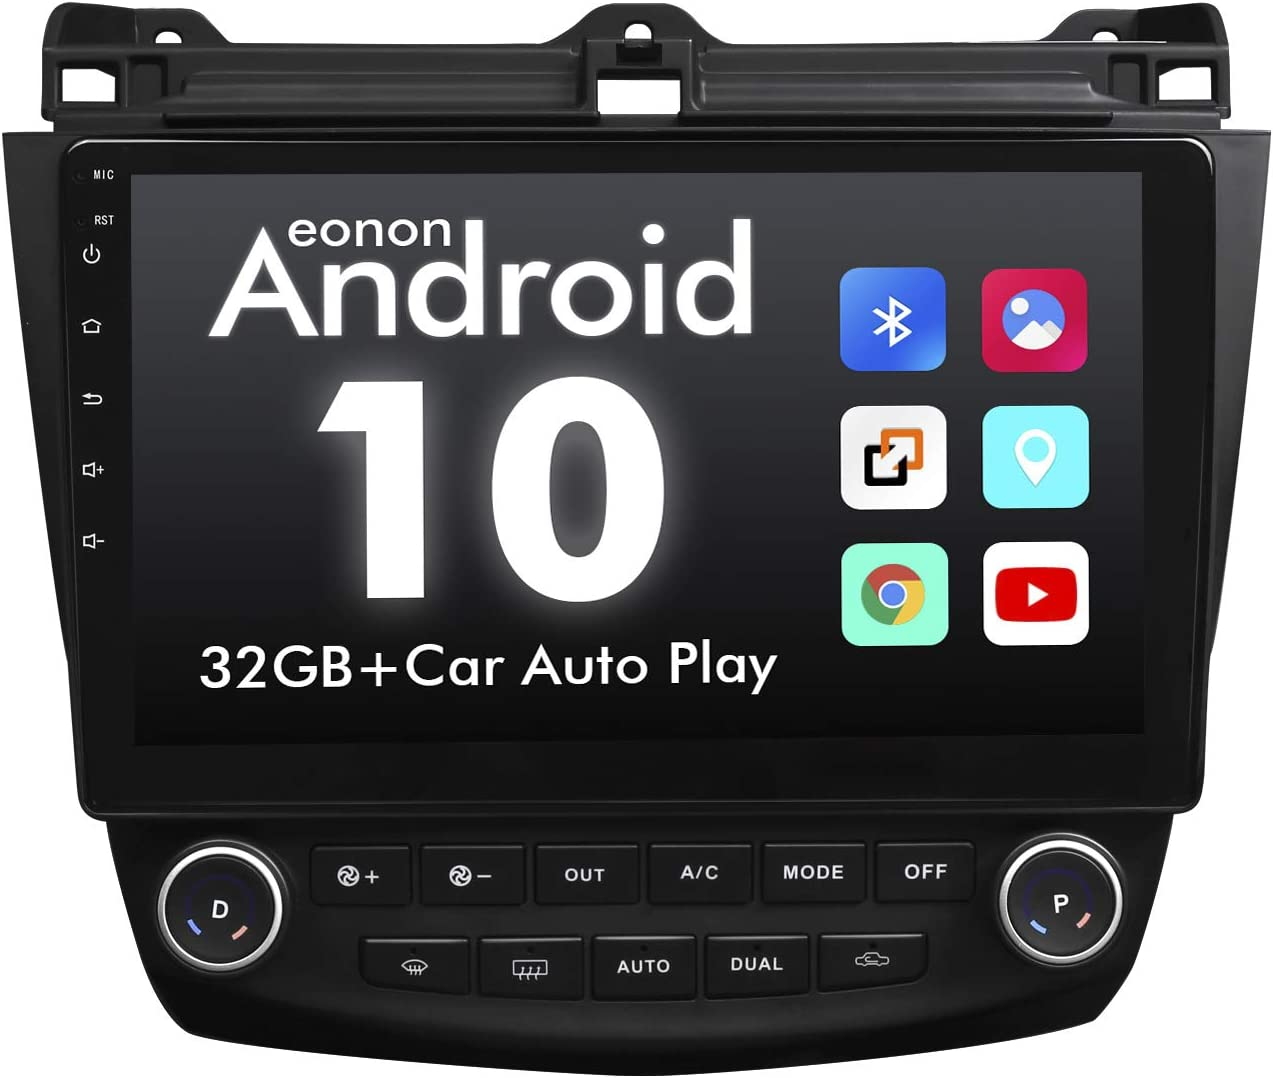 2021 Newest Android 10 Double Din Car Stereo, Eonon 10.1 Inch Car Radio Compatible with 2003~2007 Accord, GPS Navigation Radio Support Split Screen/Built-in Apple Carplay/DSP -GA9476B